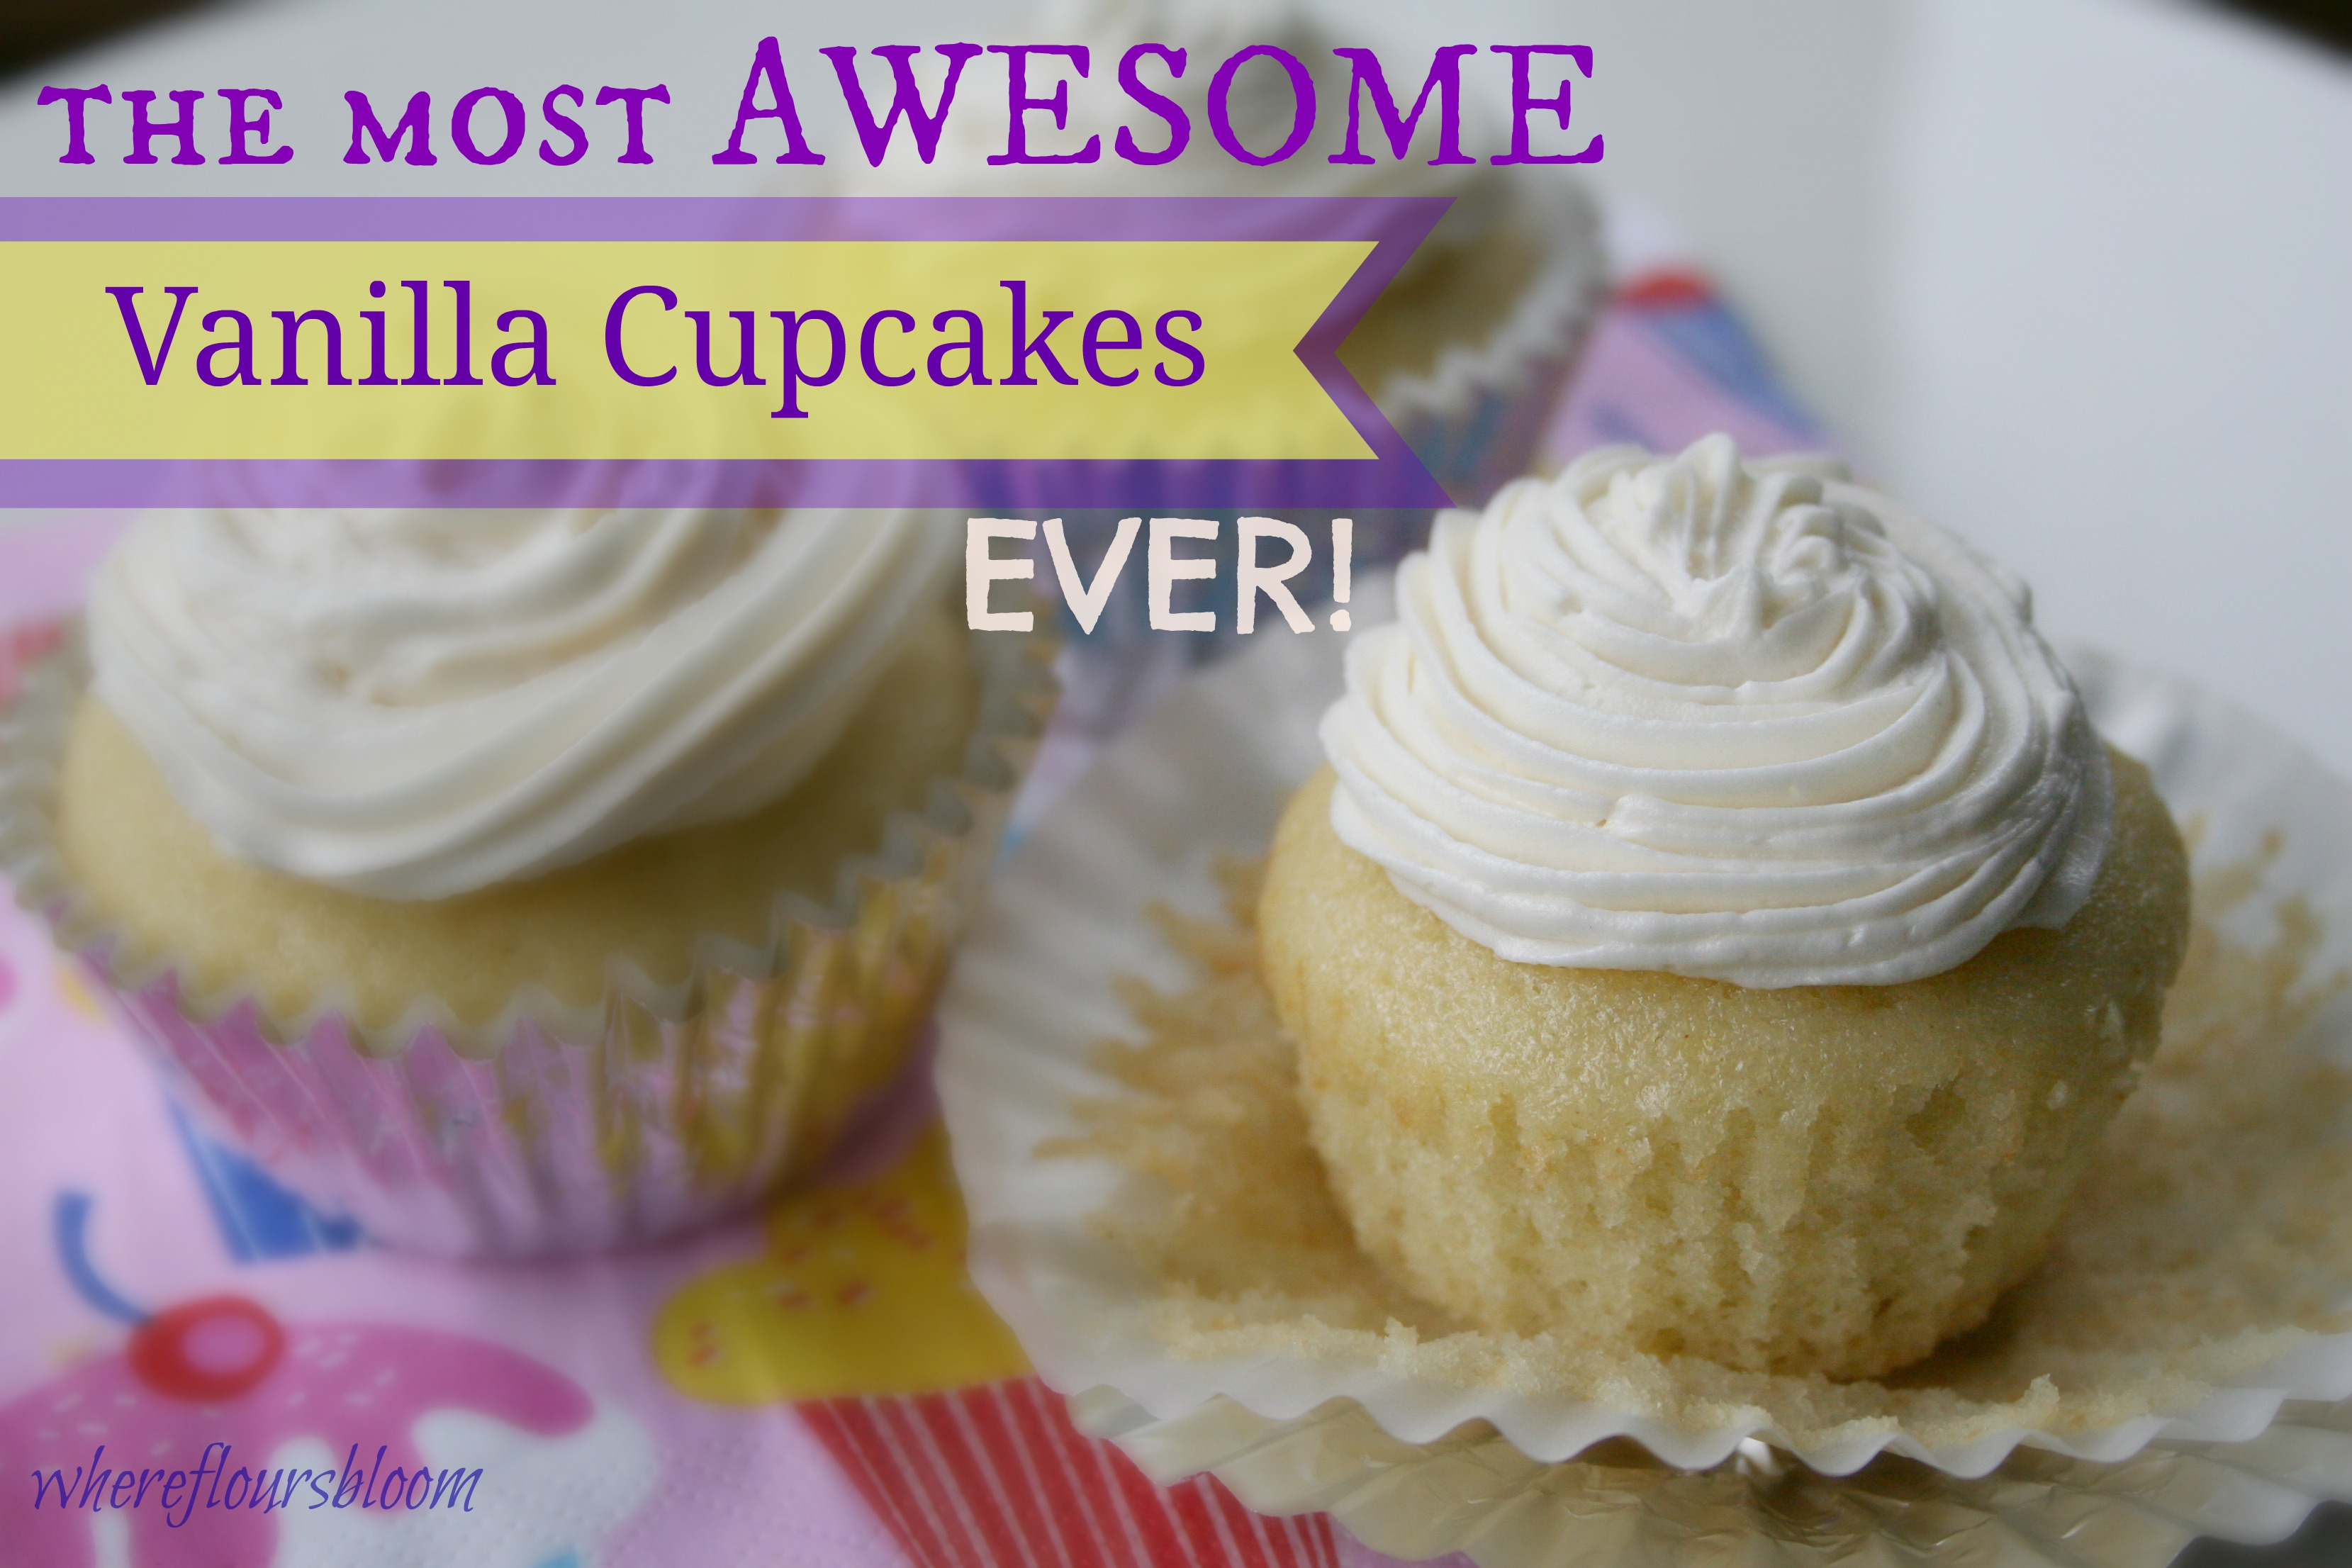 The most AWESOME vanilla cupcakes EVER! | What's For Dinner?